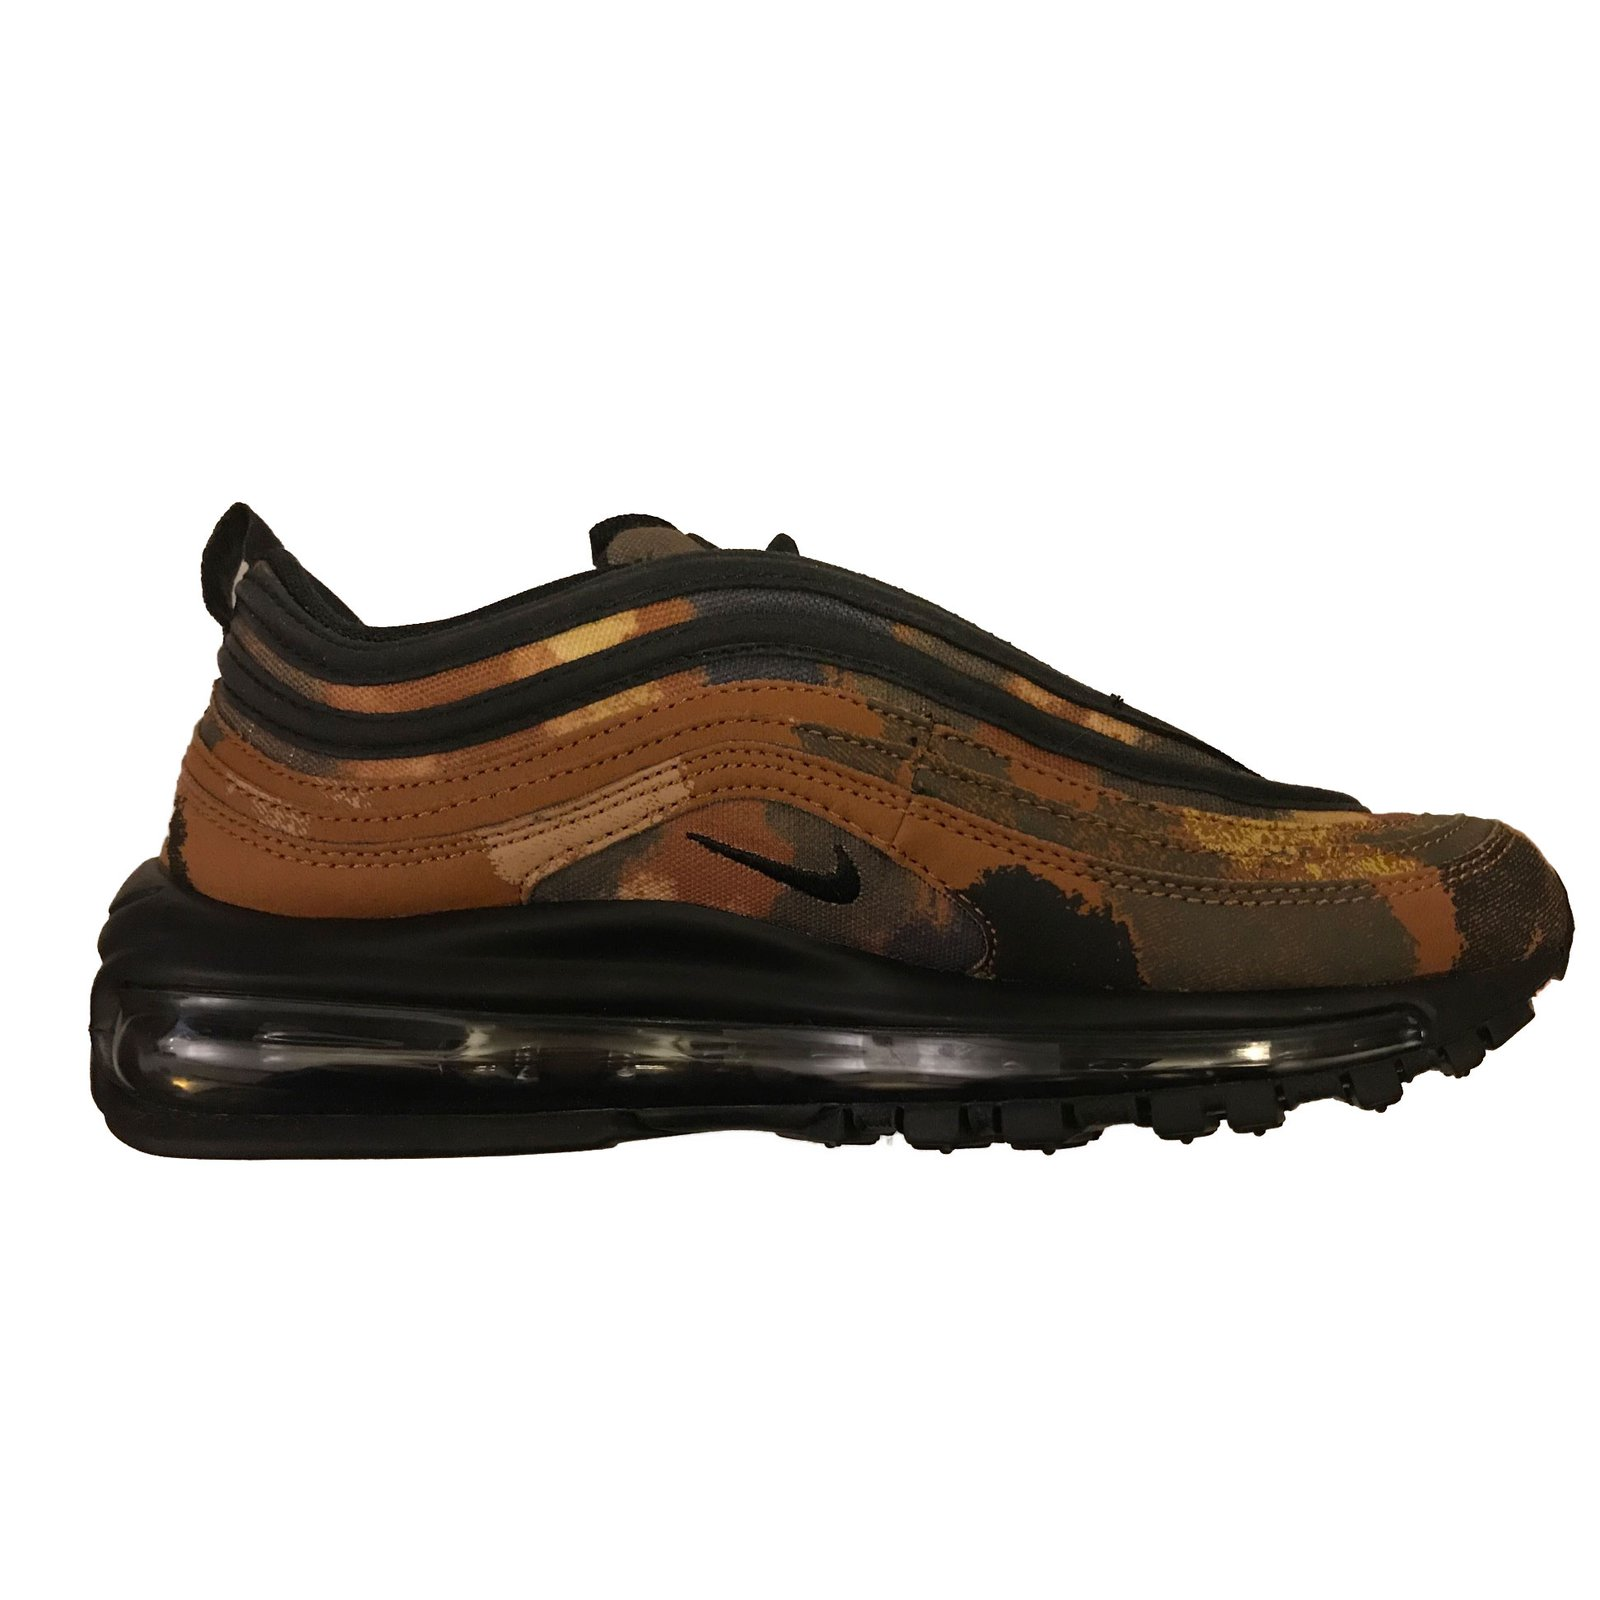 Baskets Nike Air Max 97 Camo Limited Edition Autre Multicolore ref.64595 - Joli Closet